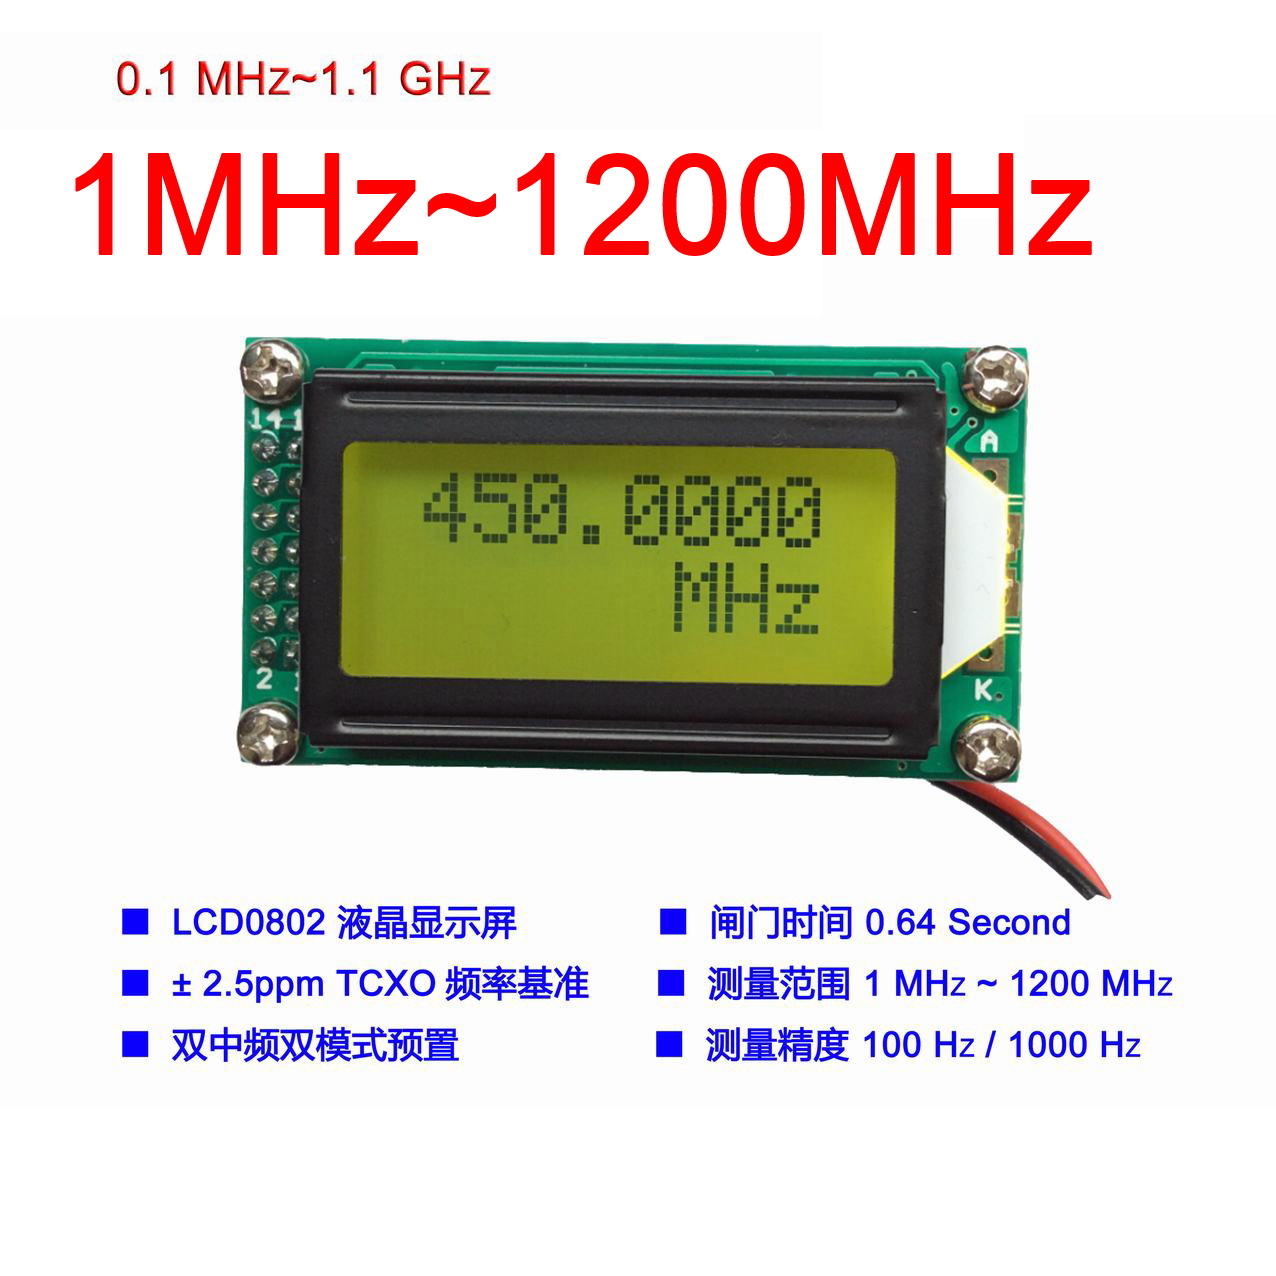 Amplifier Frequency Counter : Mhz ghz rf frequency counter tester digital